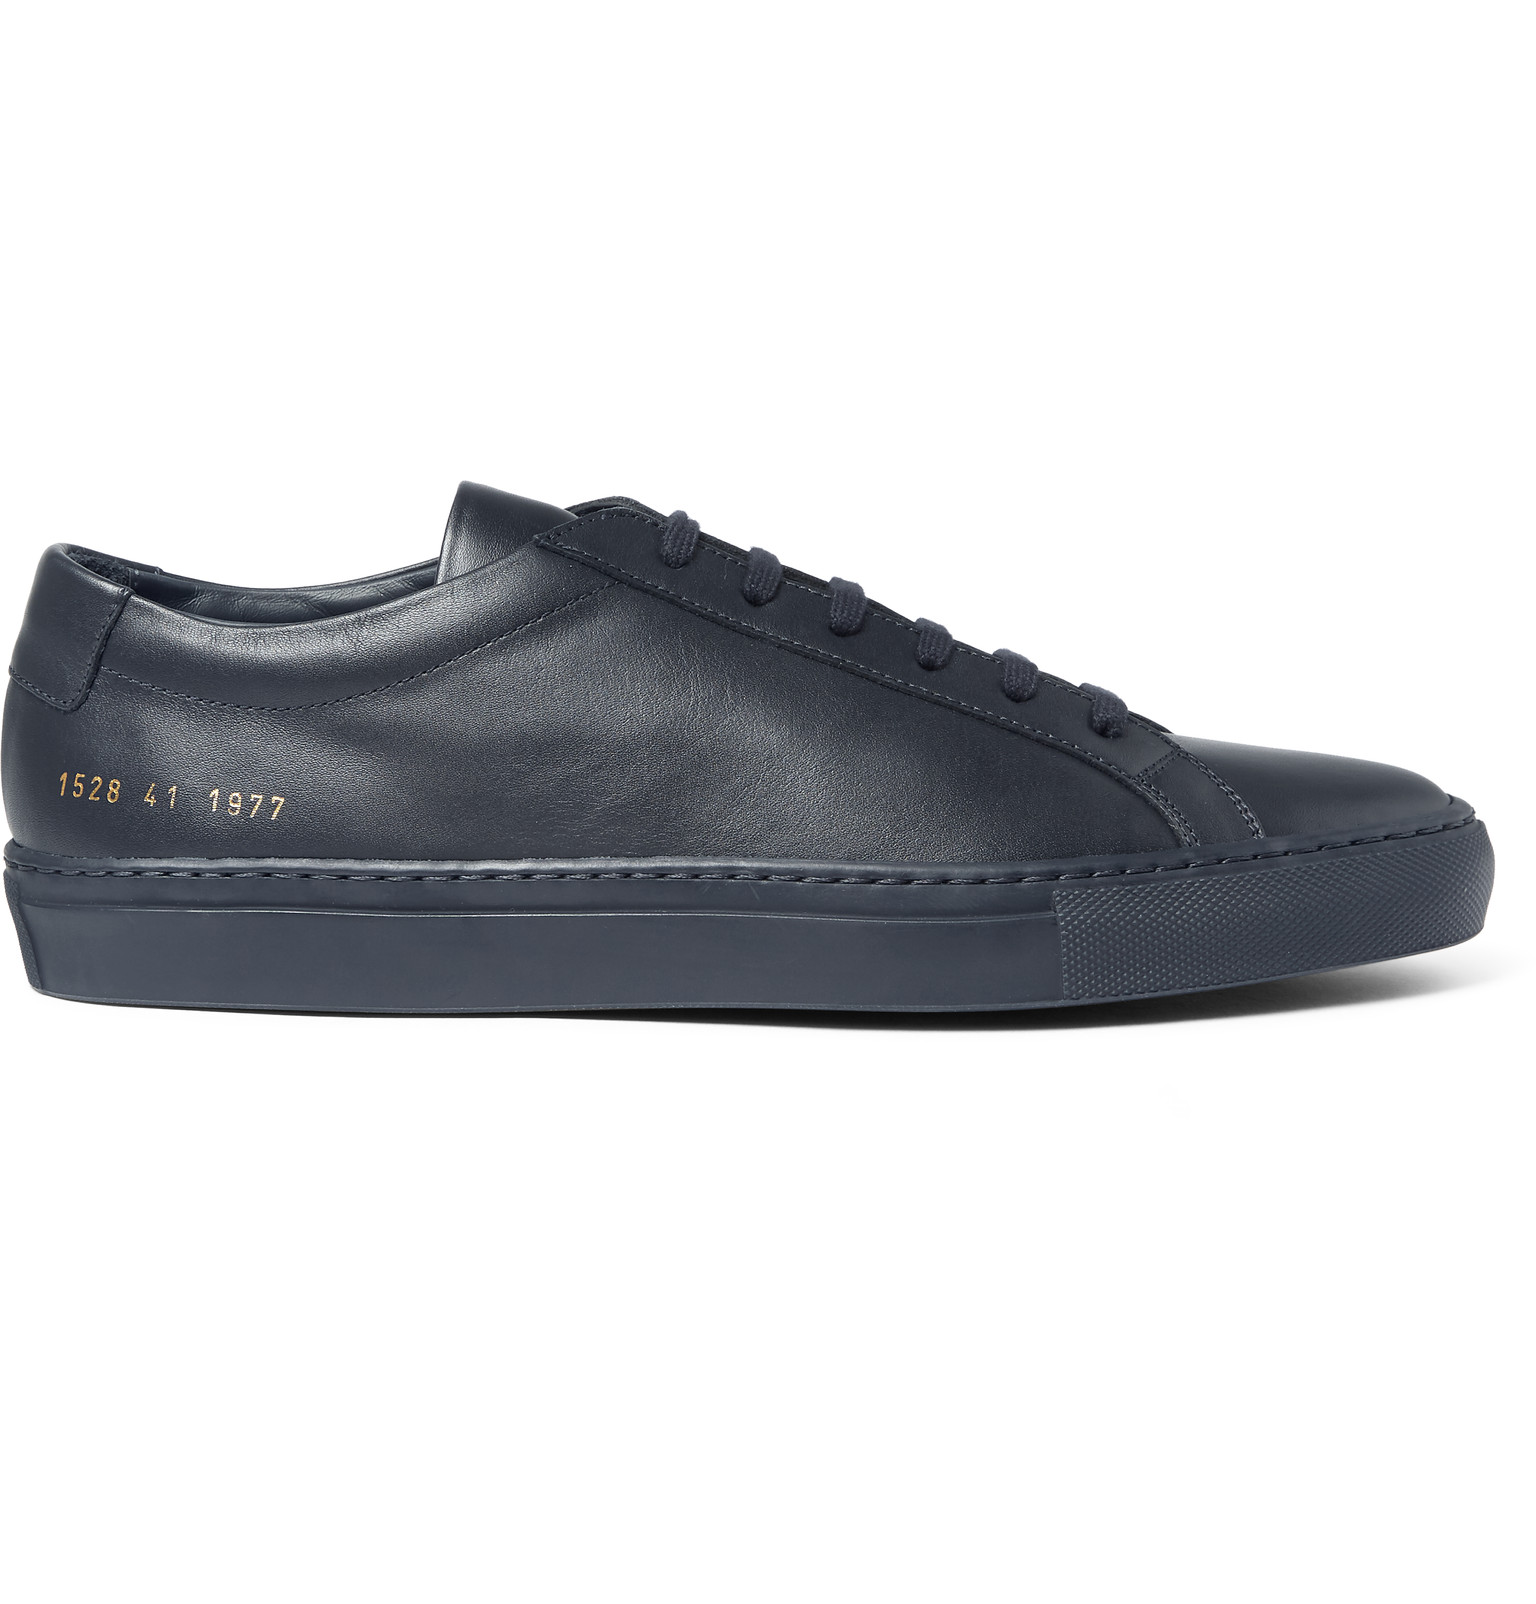 022809cb83cfd Common Projects - Original Achilles Leather Sneakers